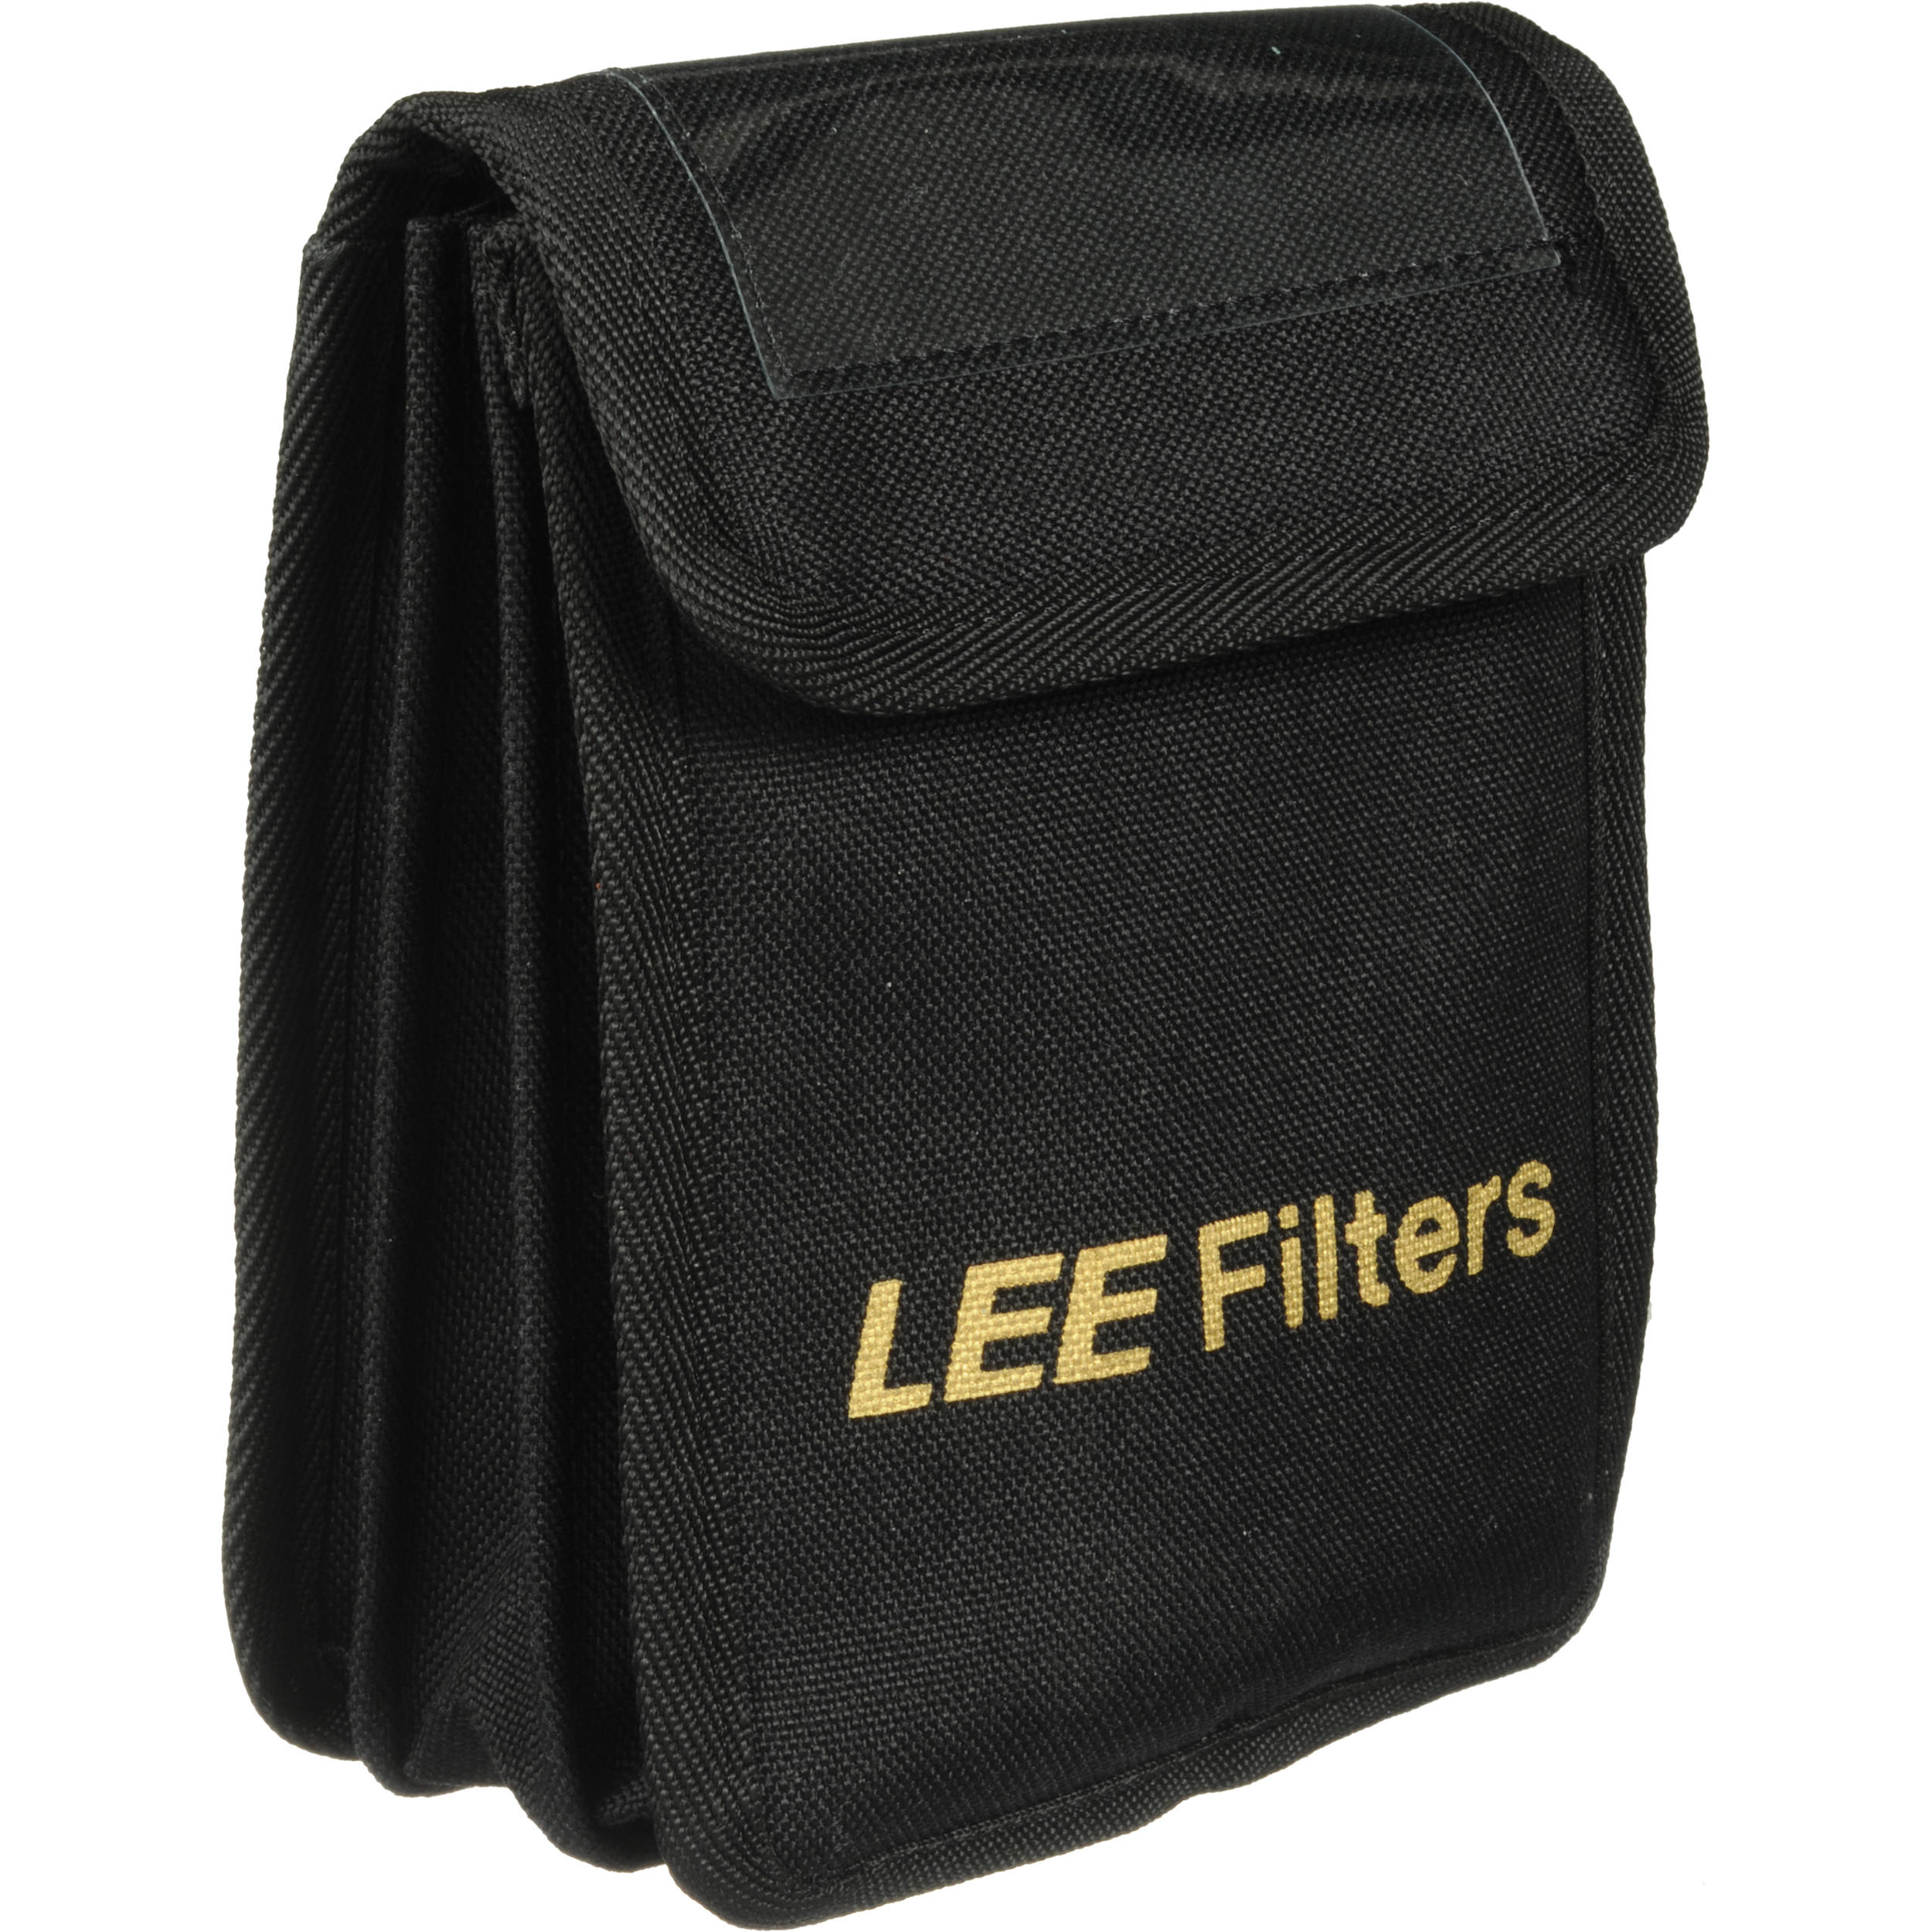 lee multi filter pouch review